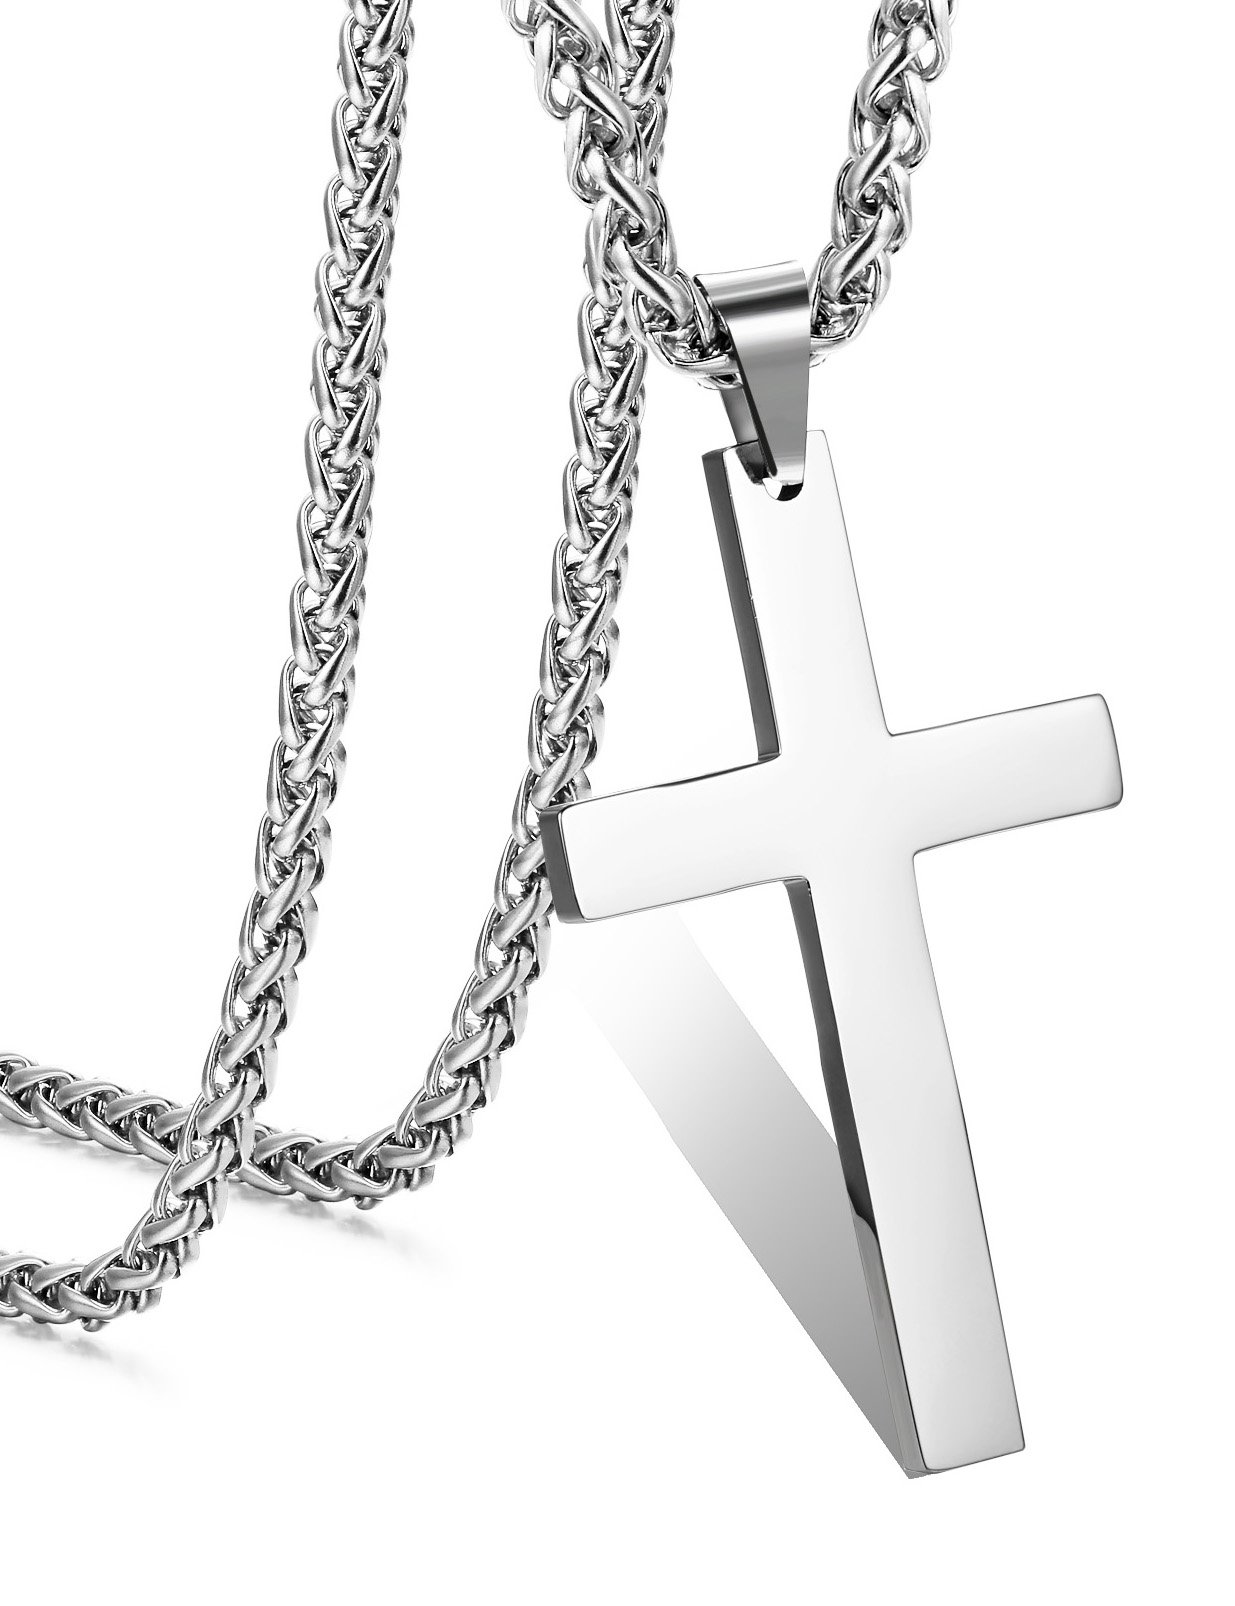 FIBO STEEL Stainless Steel Cross Pendant Wheat Chain Necklace for Men Women 24 Inches by FIBO STEEL